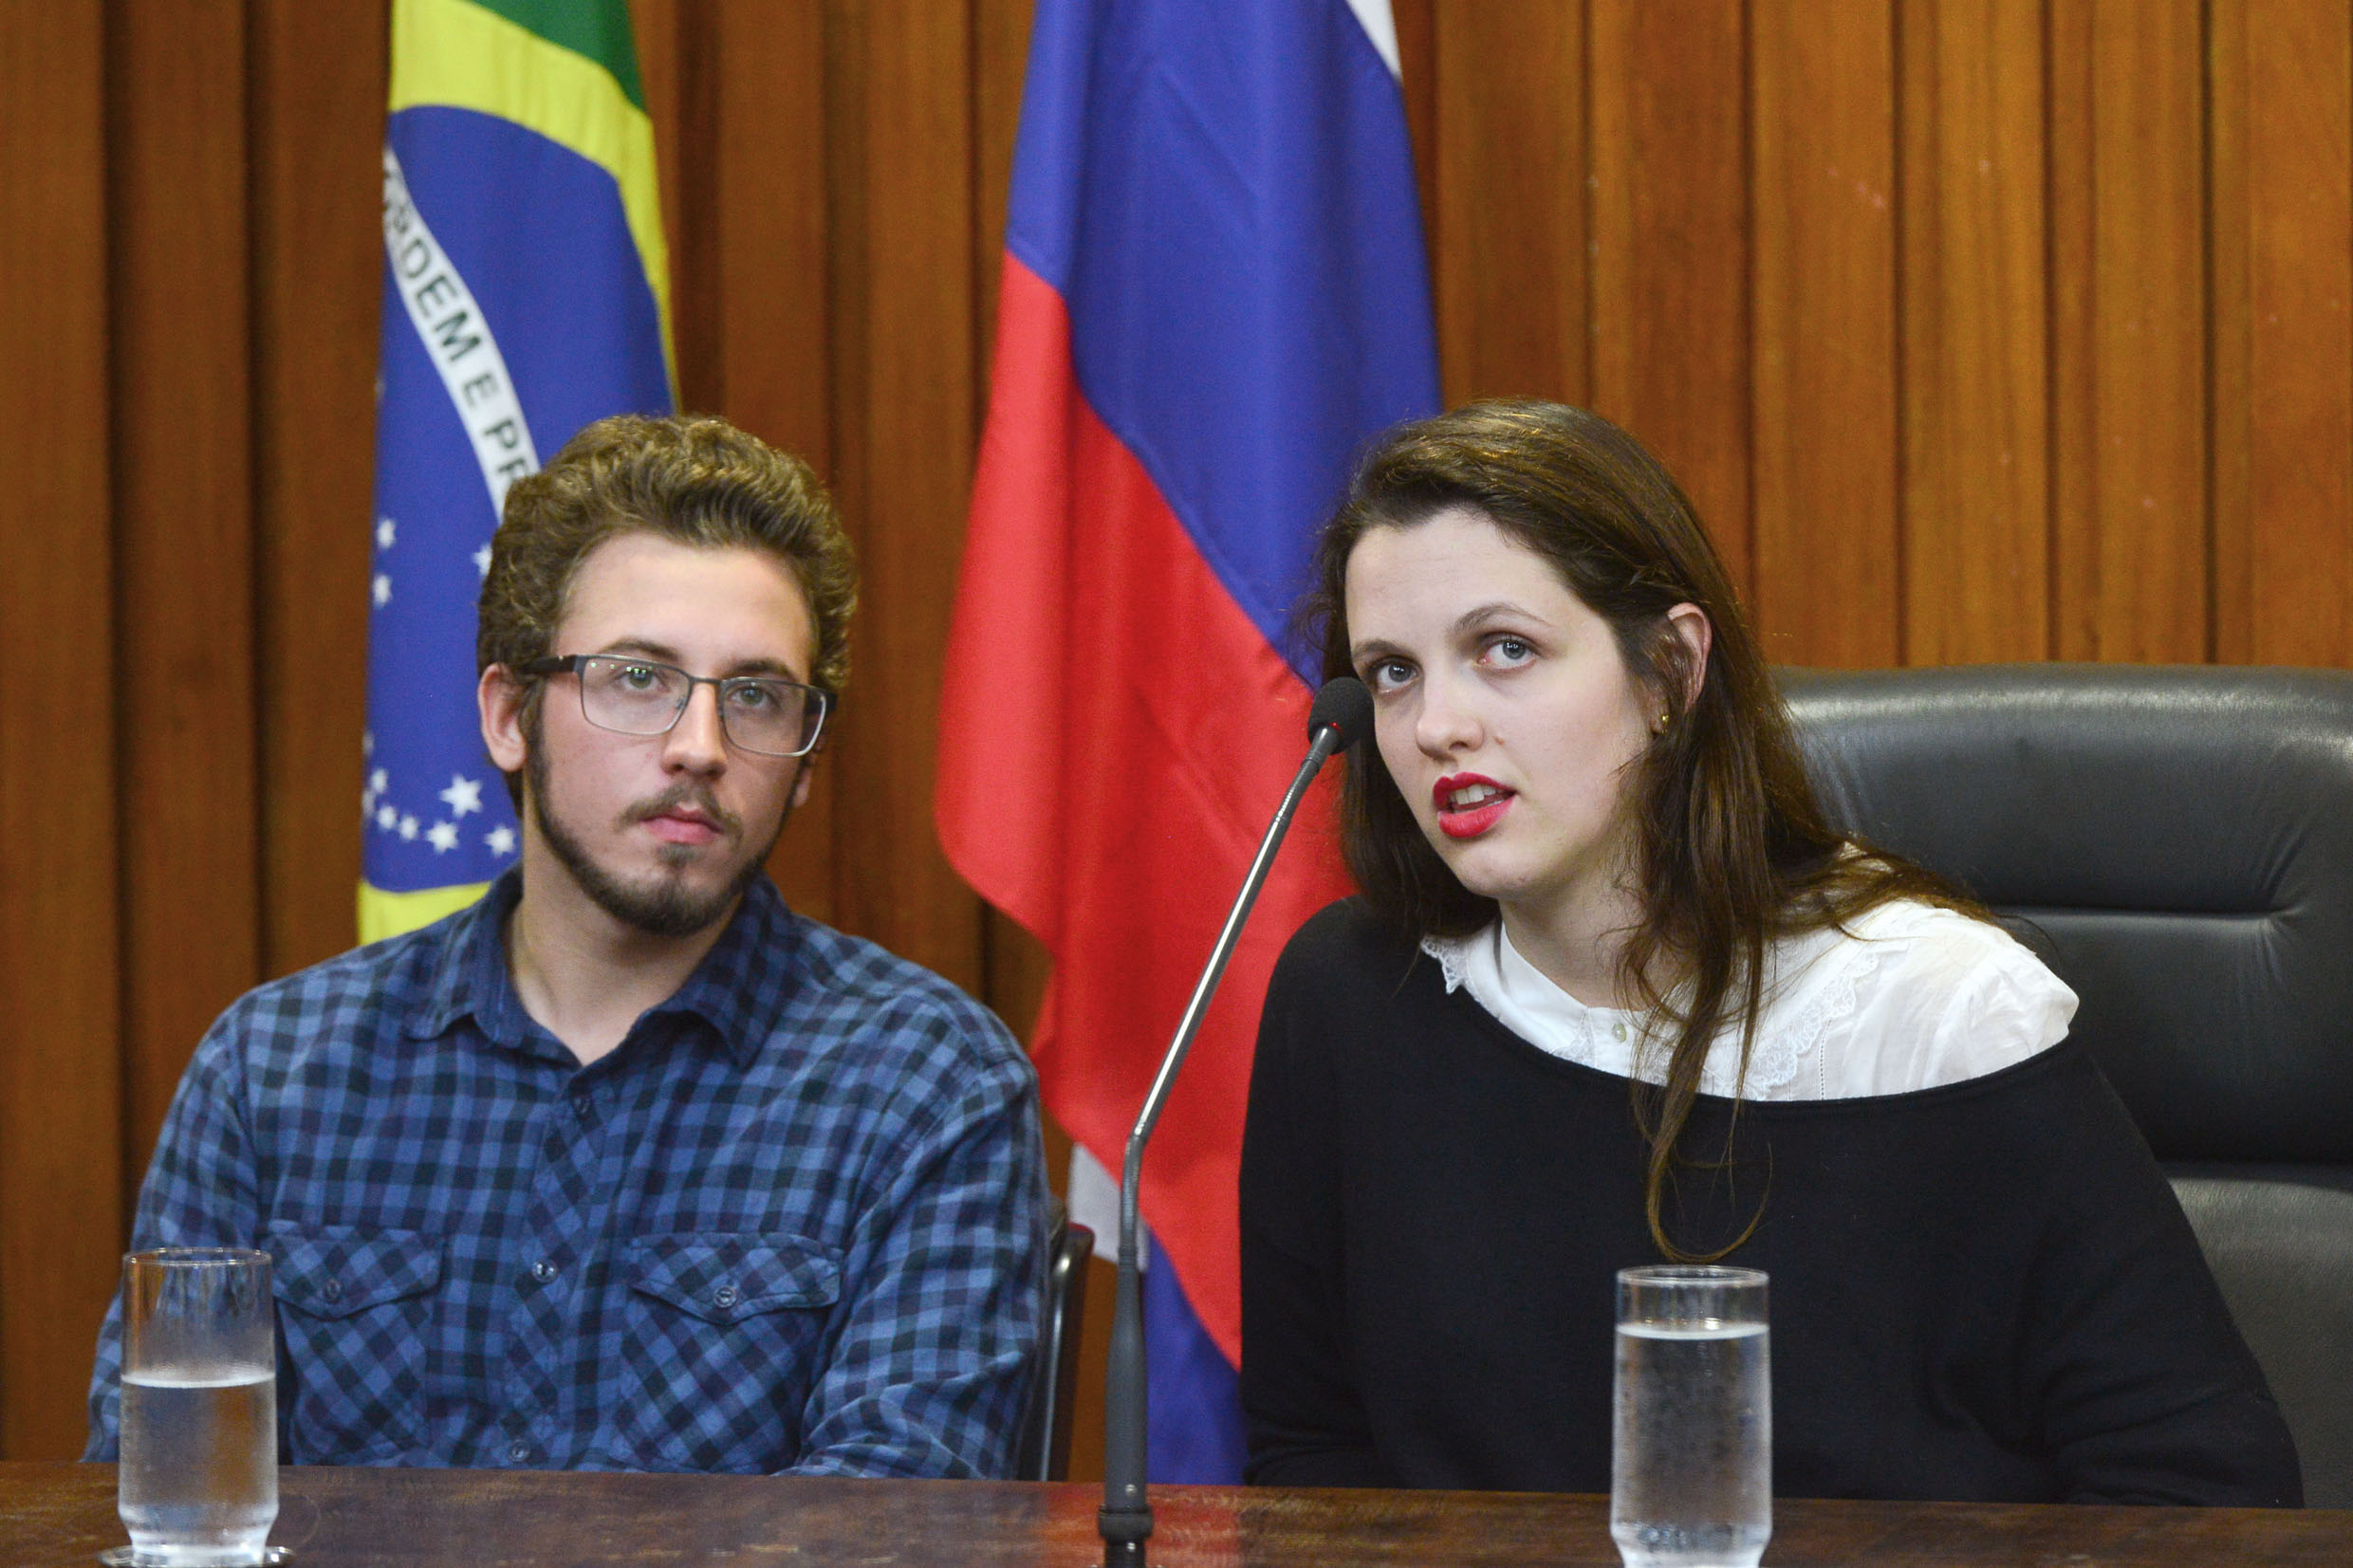 Ivan Dimitry Zyrianoff e Vera Gers Dimitrinov<a style='float:right' href='https://www3.al.sp.gov.br/repositorio/noticia/N-05-2015/fg170810.jpg' target=_blank><img src='/_img/material-file-download-white.png' width='14px' alt='Clique para baixar a imagem'></a>